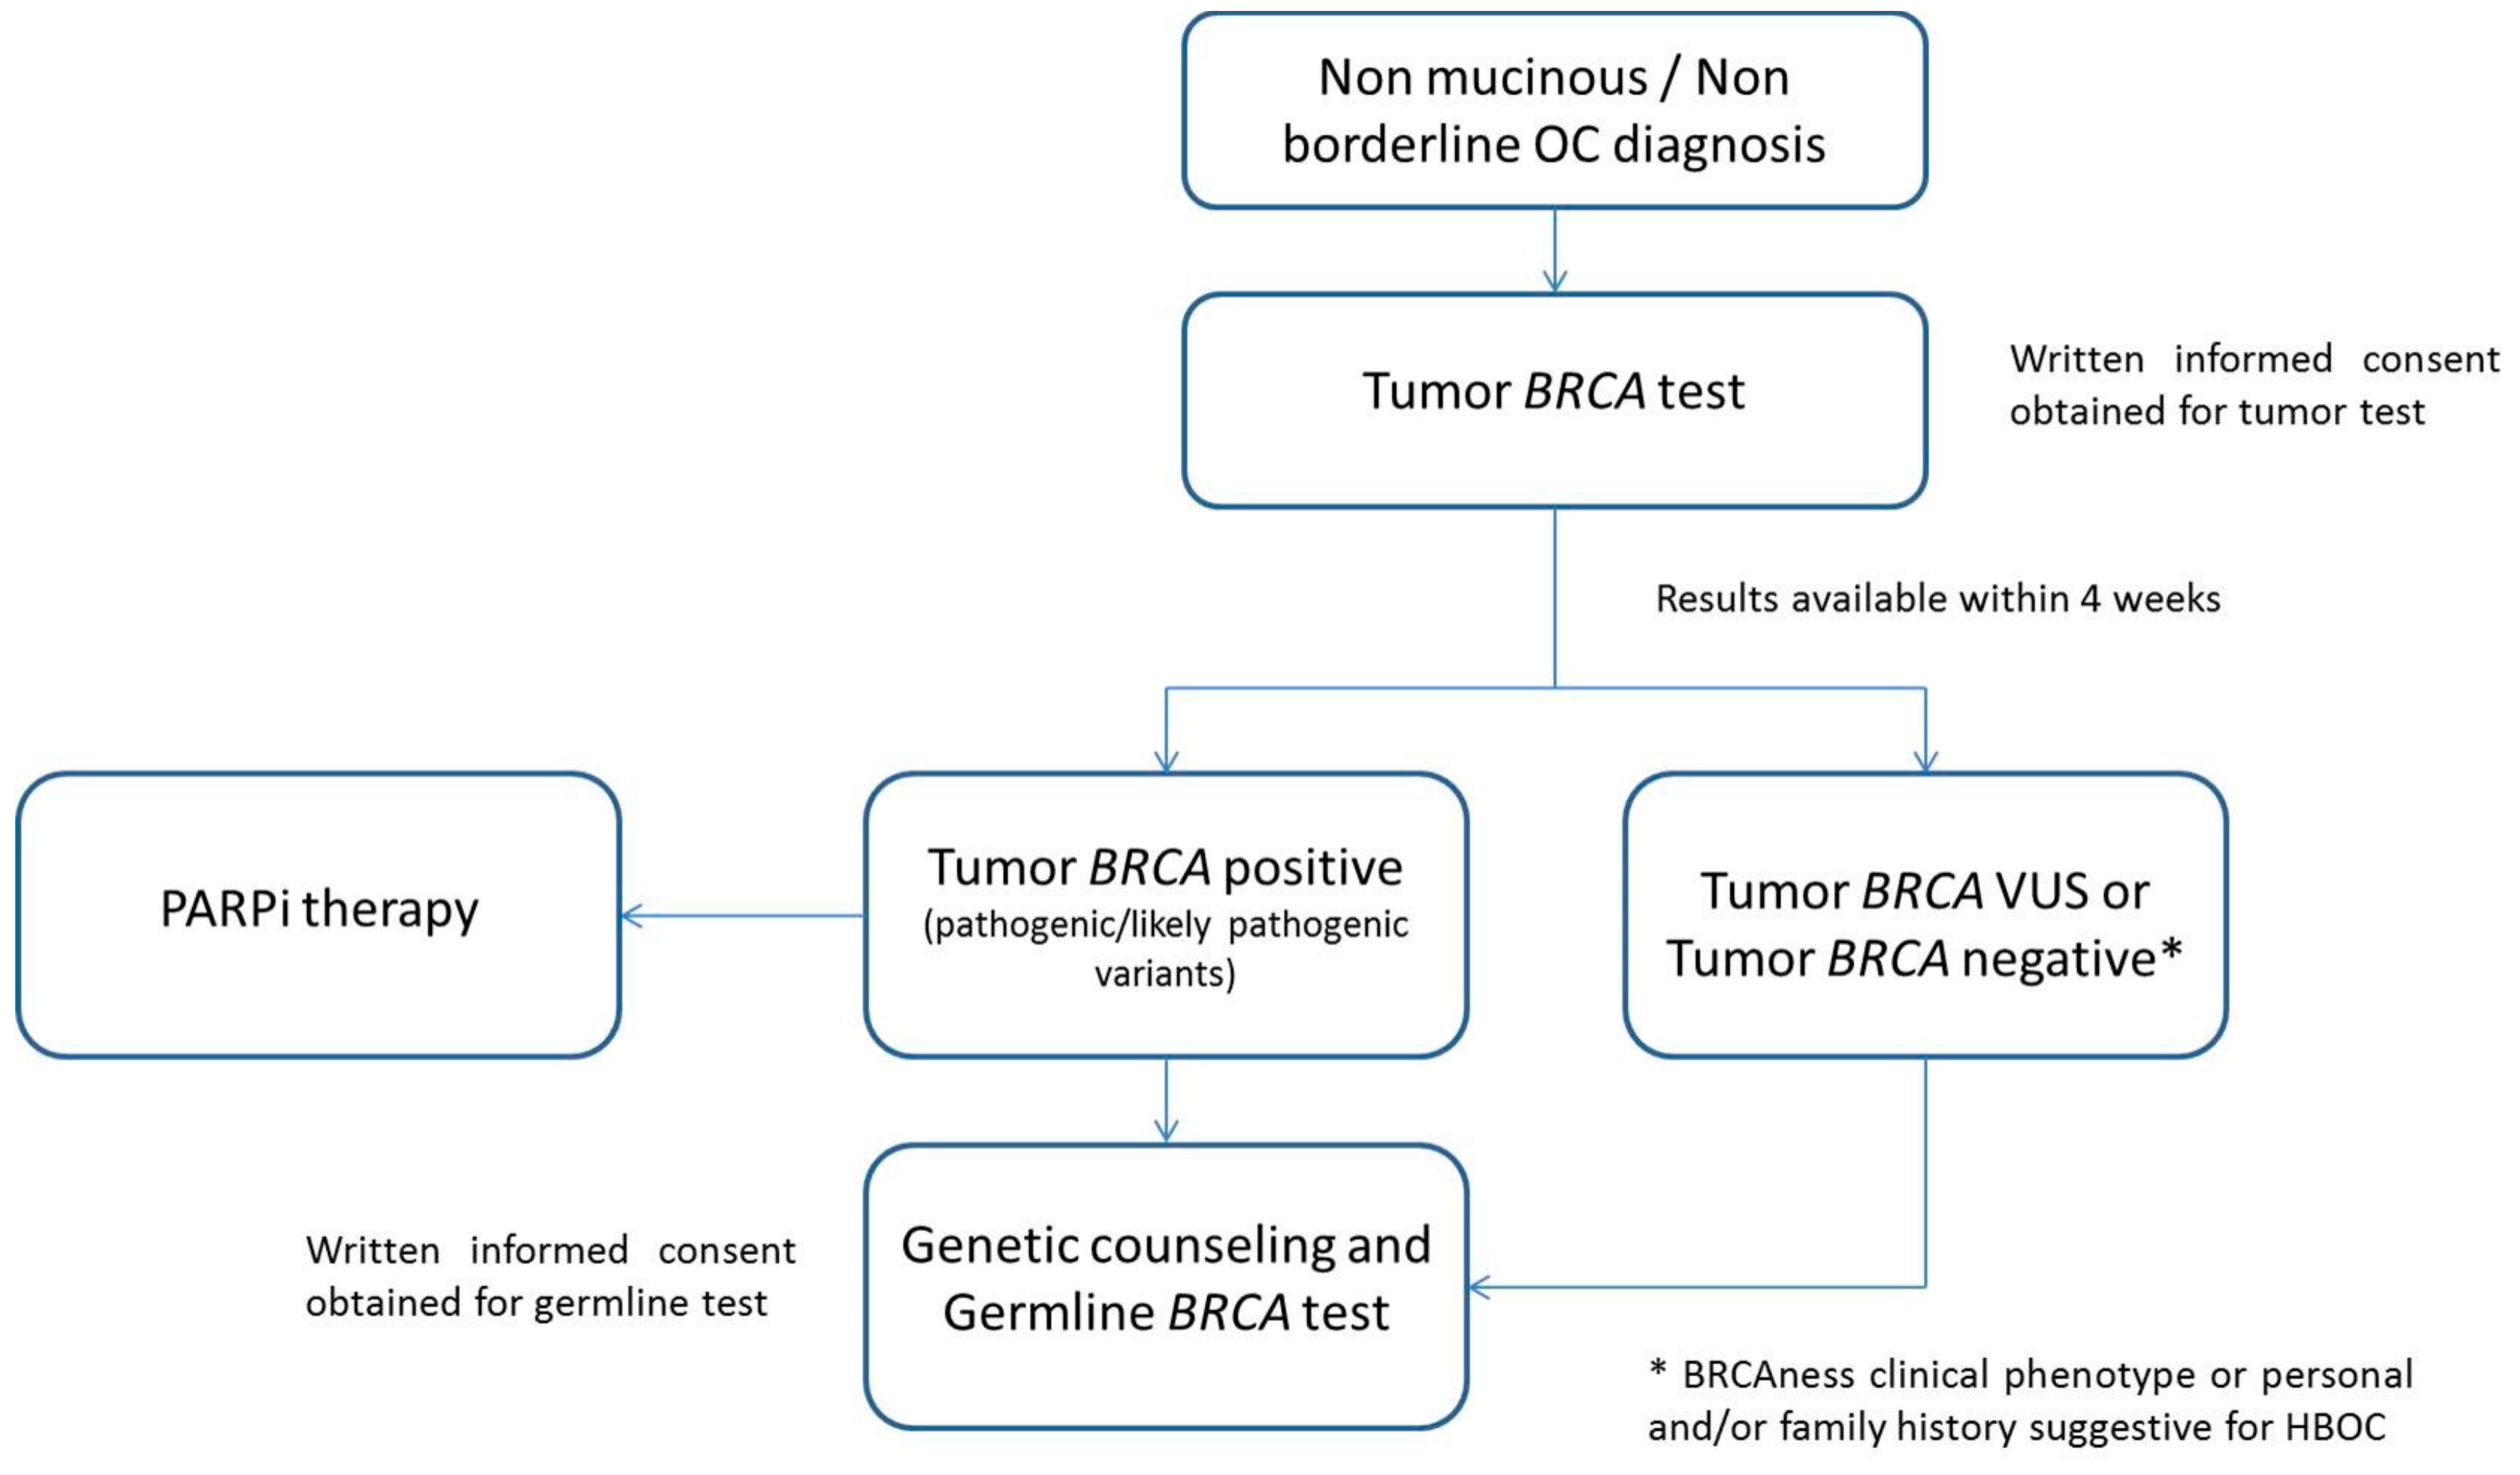 Cancers Free Full Text Tumor Brca Test For Patients With Epithelial Ovarian Cancer The Role Of Molecular Pathology In The Era Of Parp Inhibitor Therapy Html